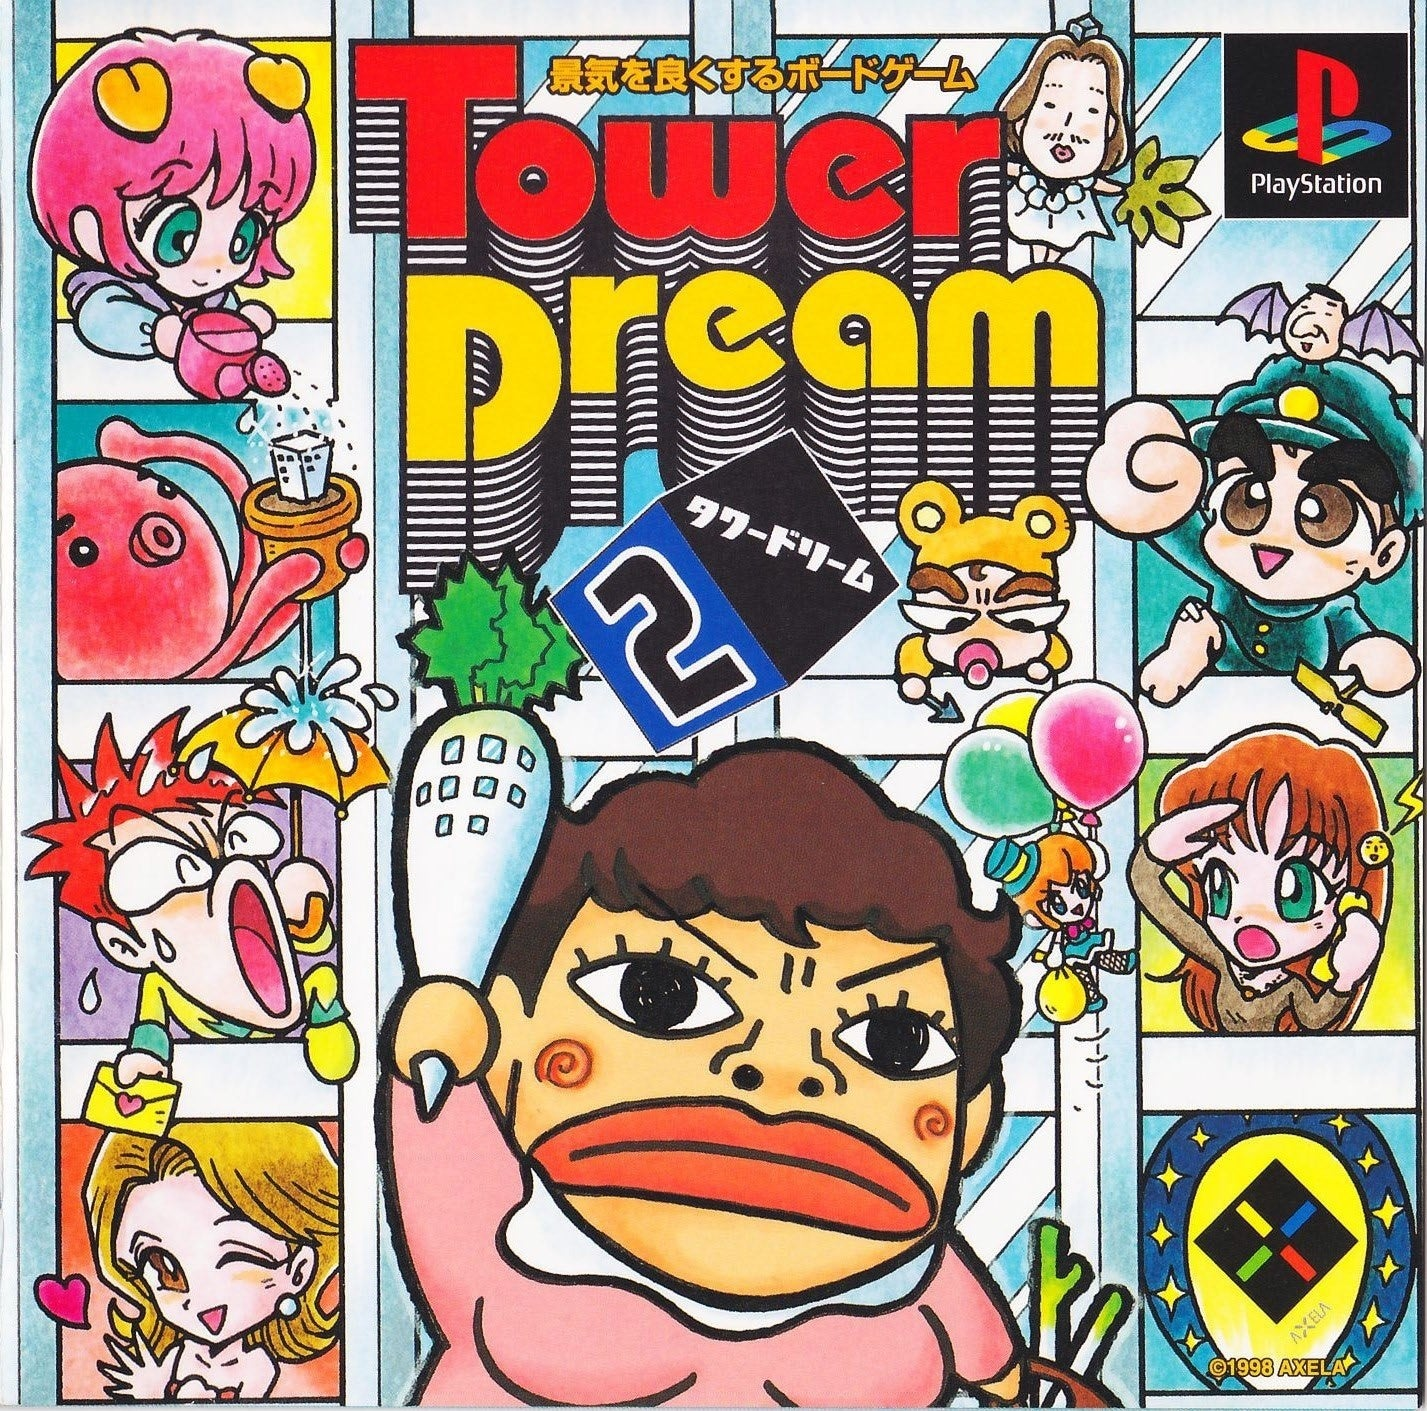 Tower Dream 2 - PlayStation (Japan)